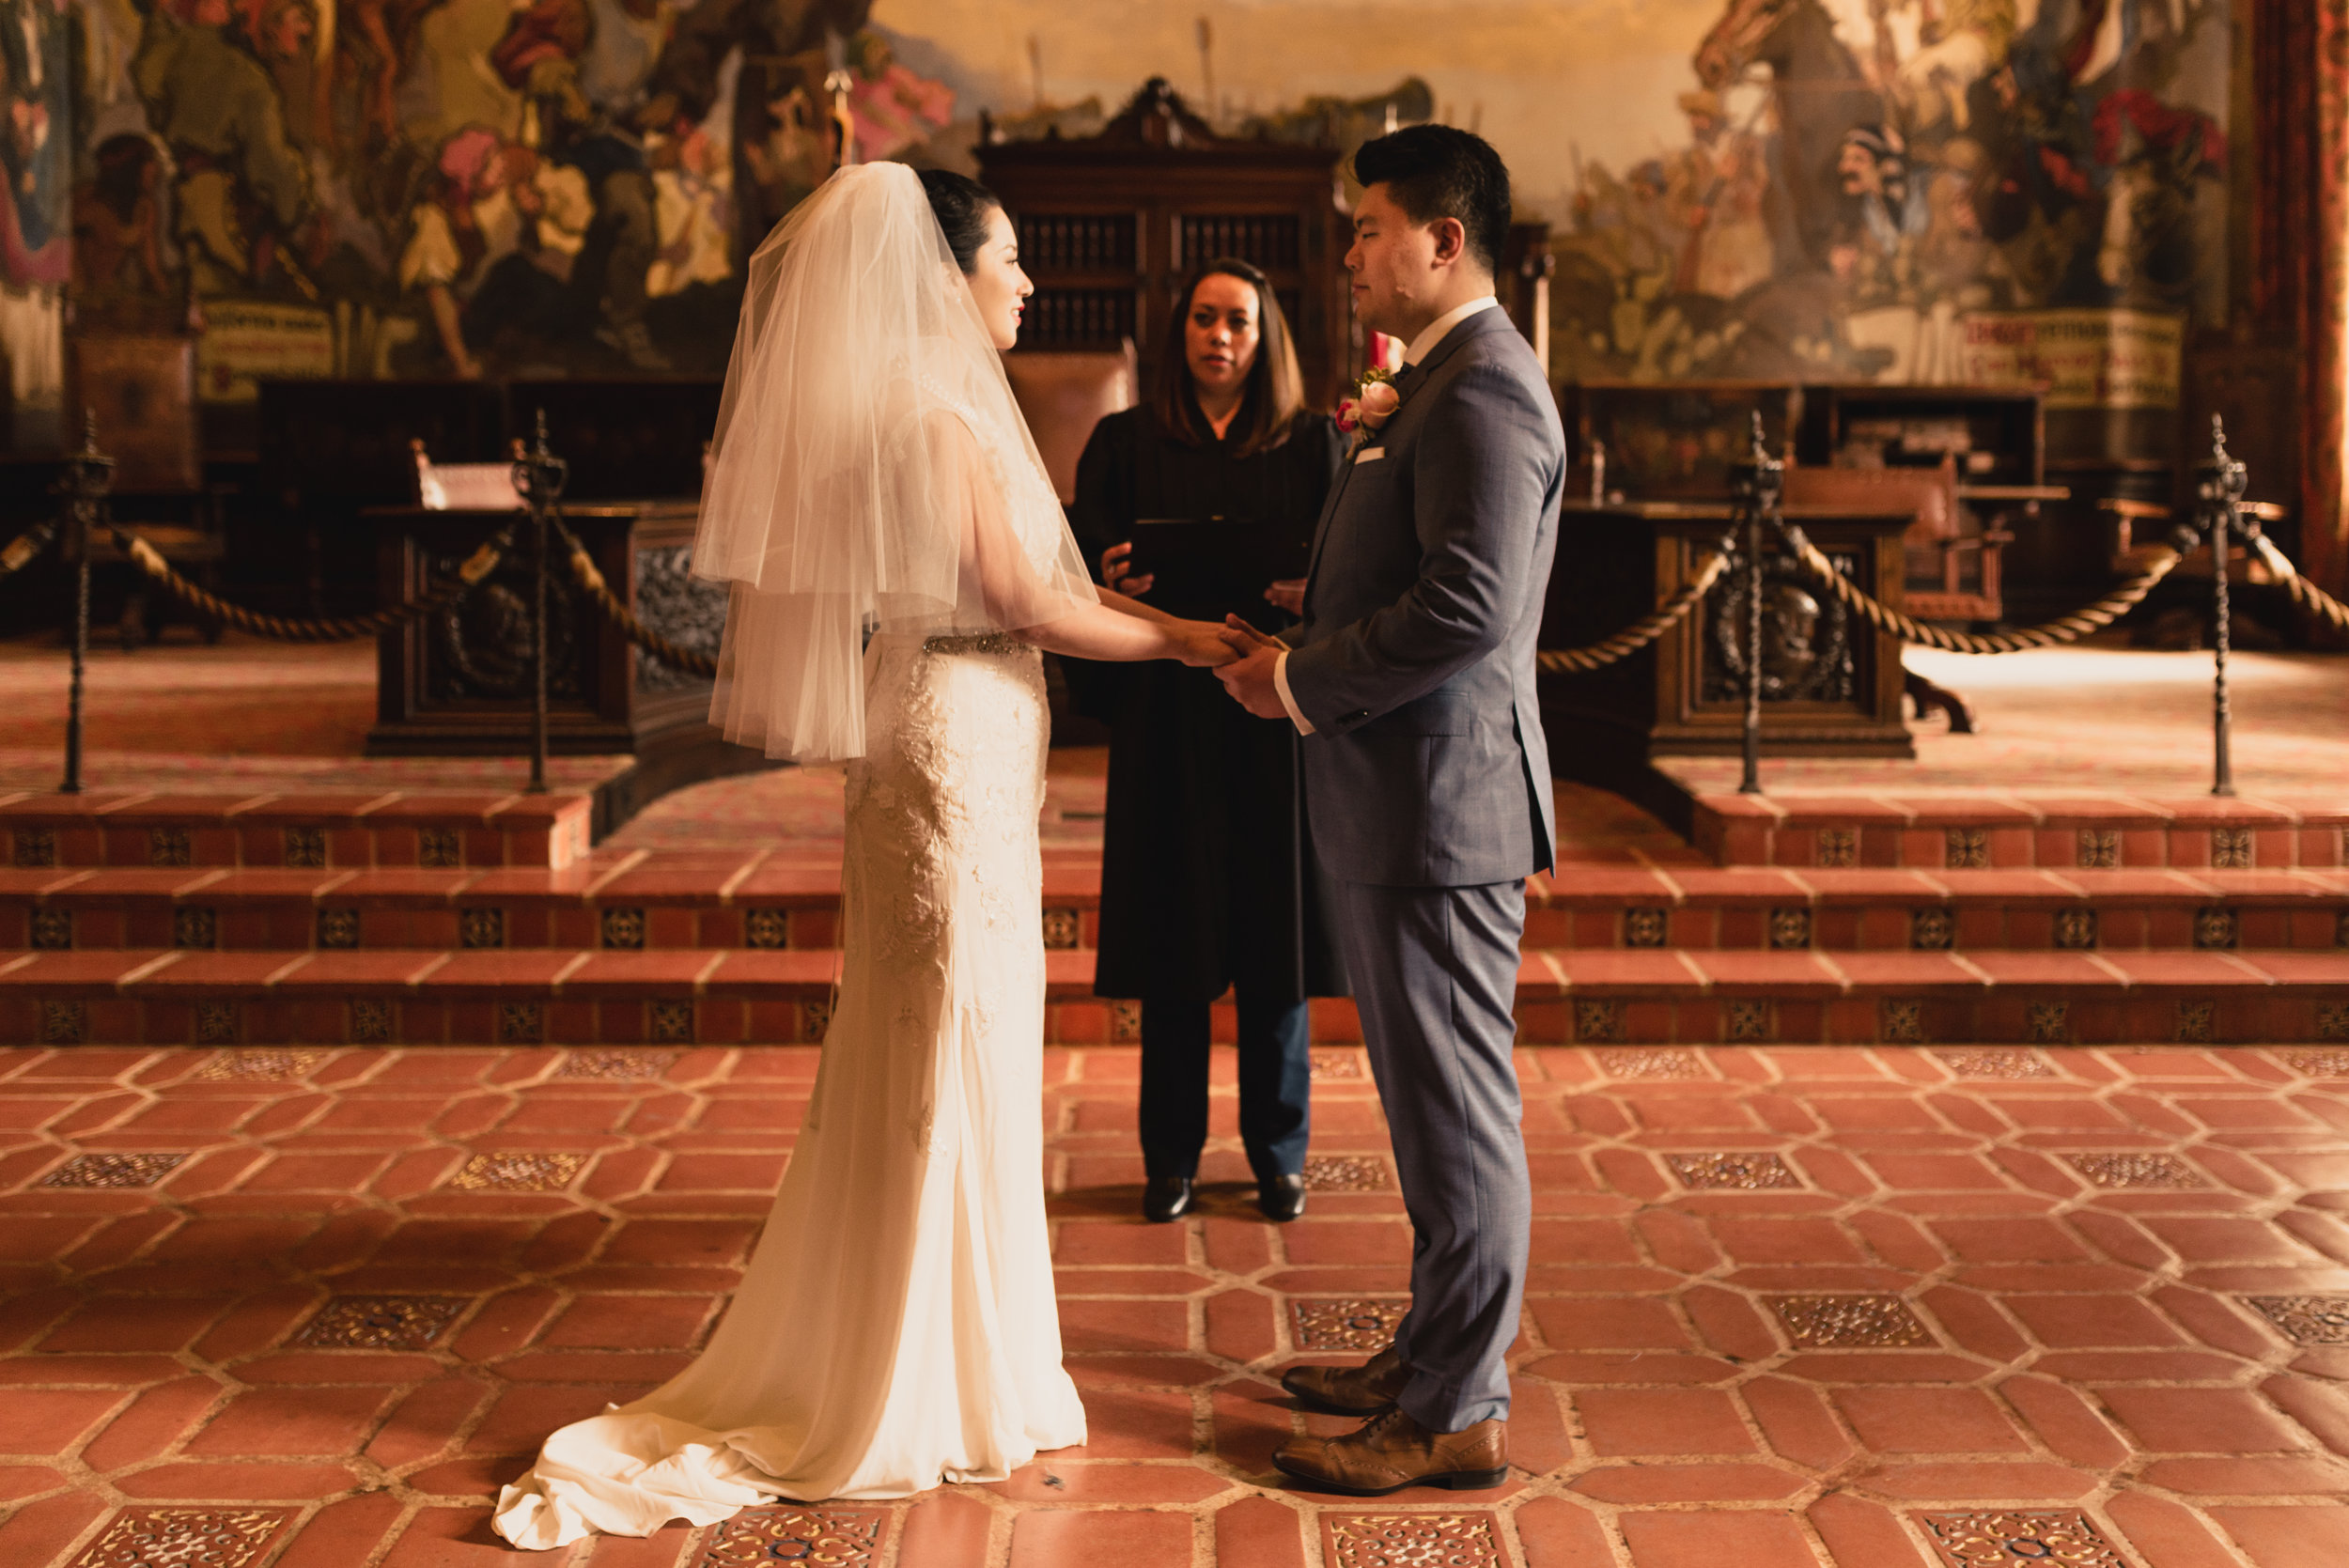 SantaBarbara_CourthouseElopement_ElopementPhotographer